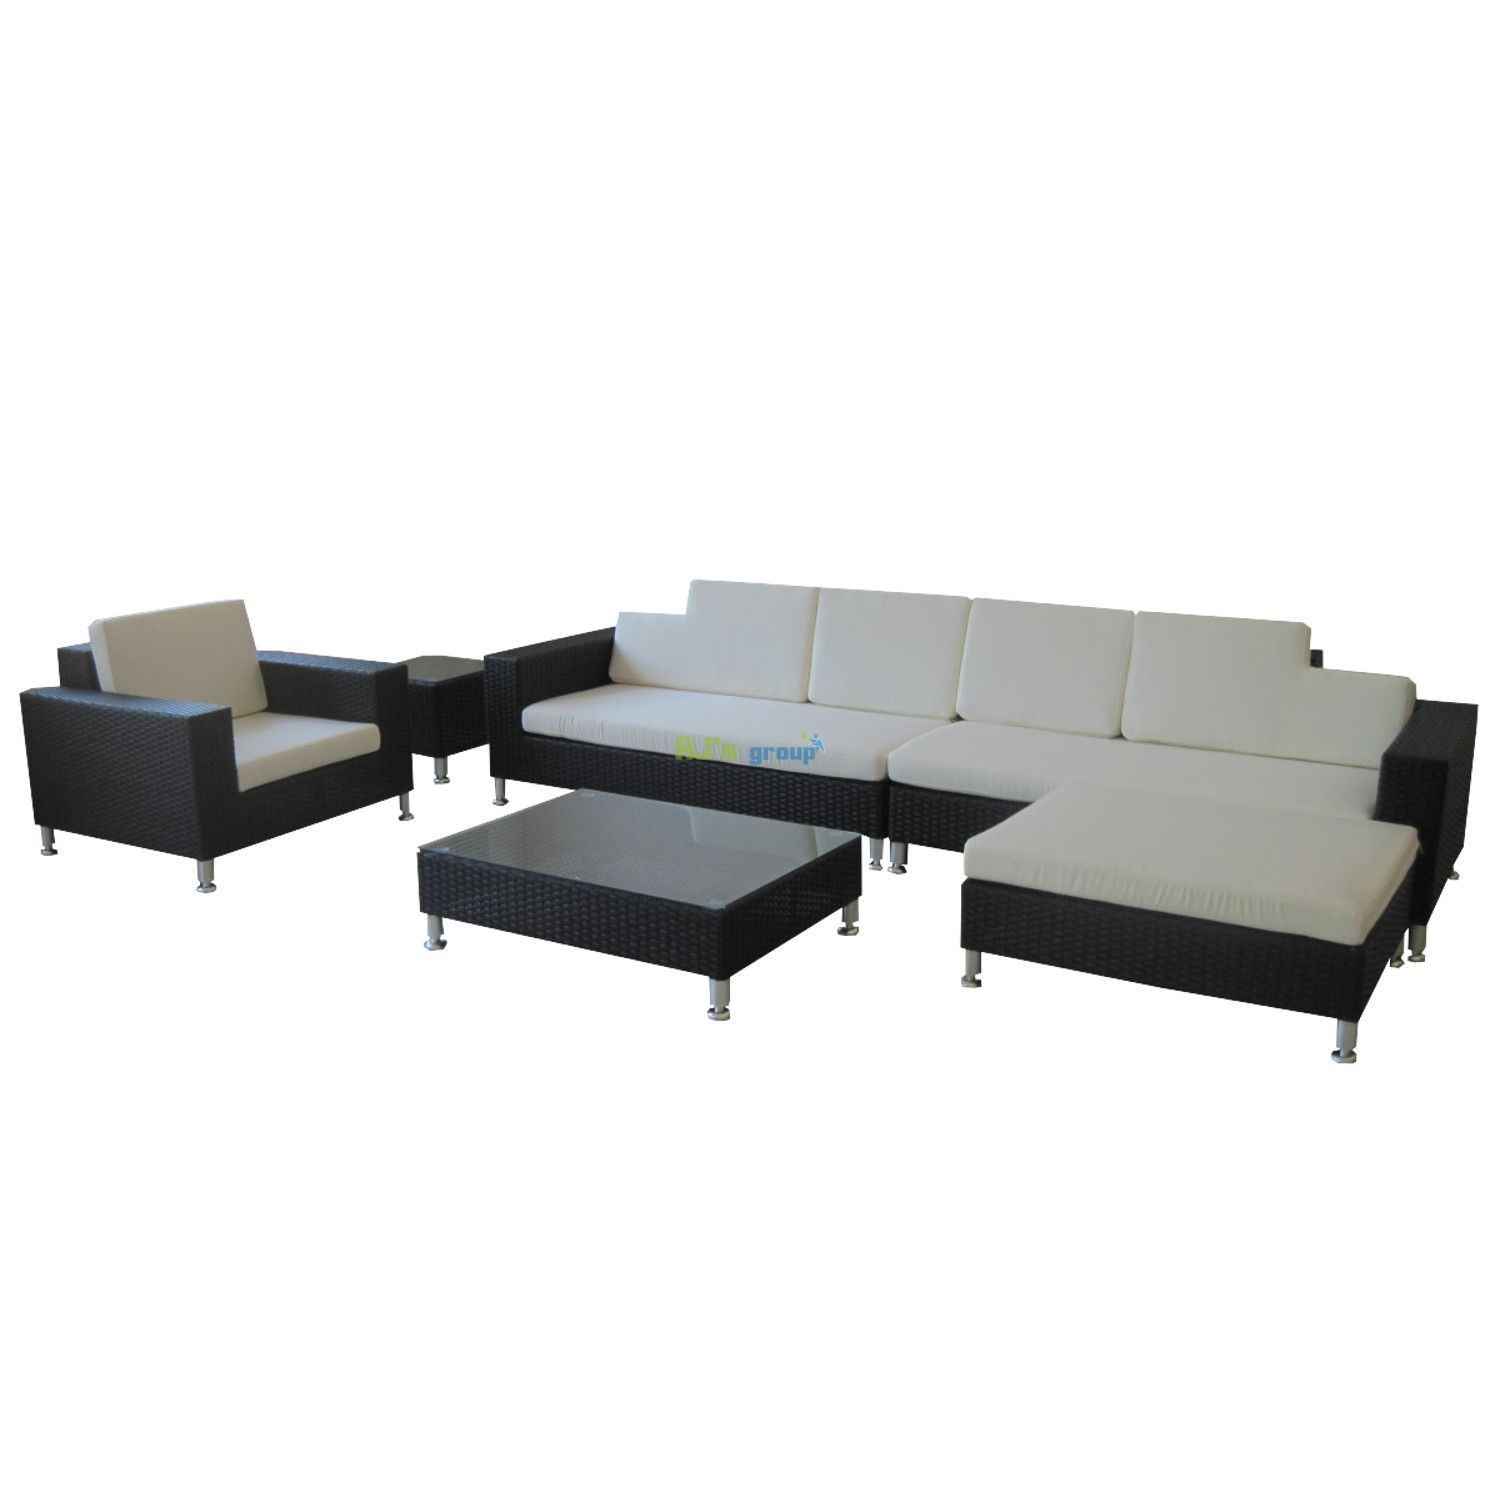 lounge gartenmoebel polyrattan stunning gartenmoebel. Black Bedroom Furniture Sets. Home Design Ideas